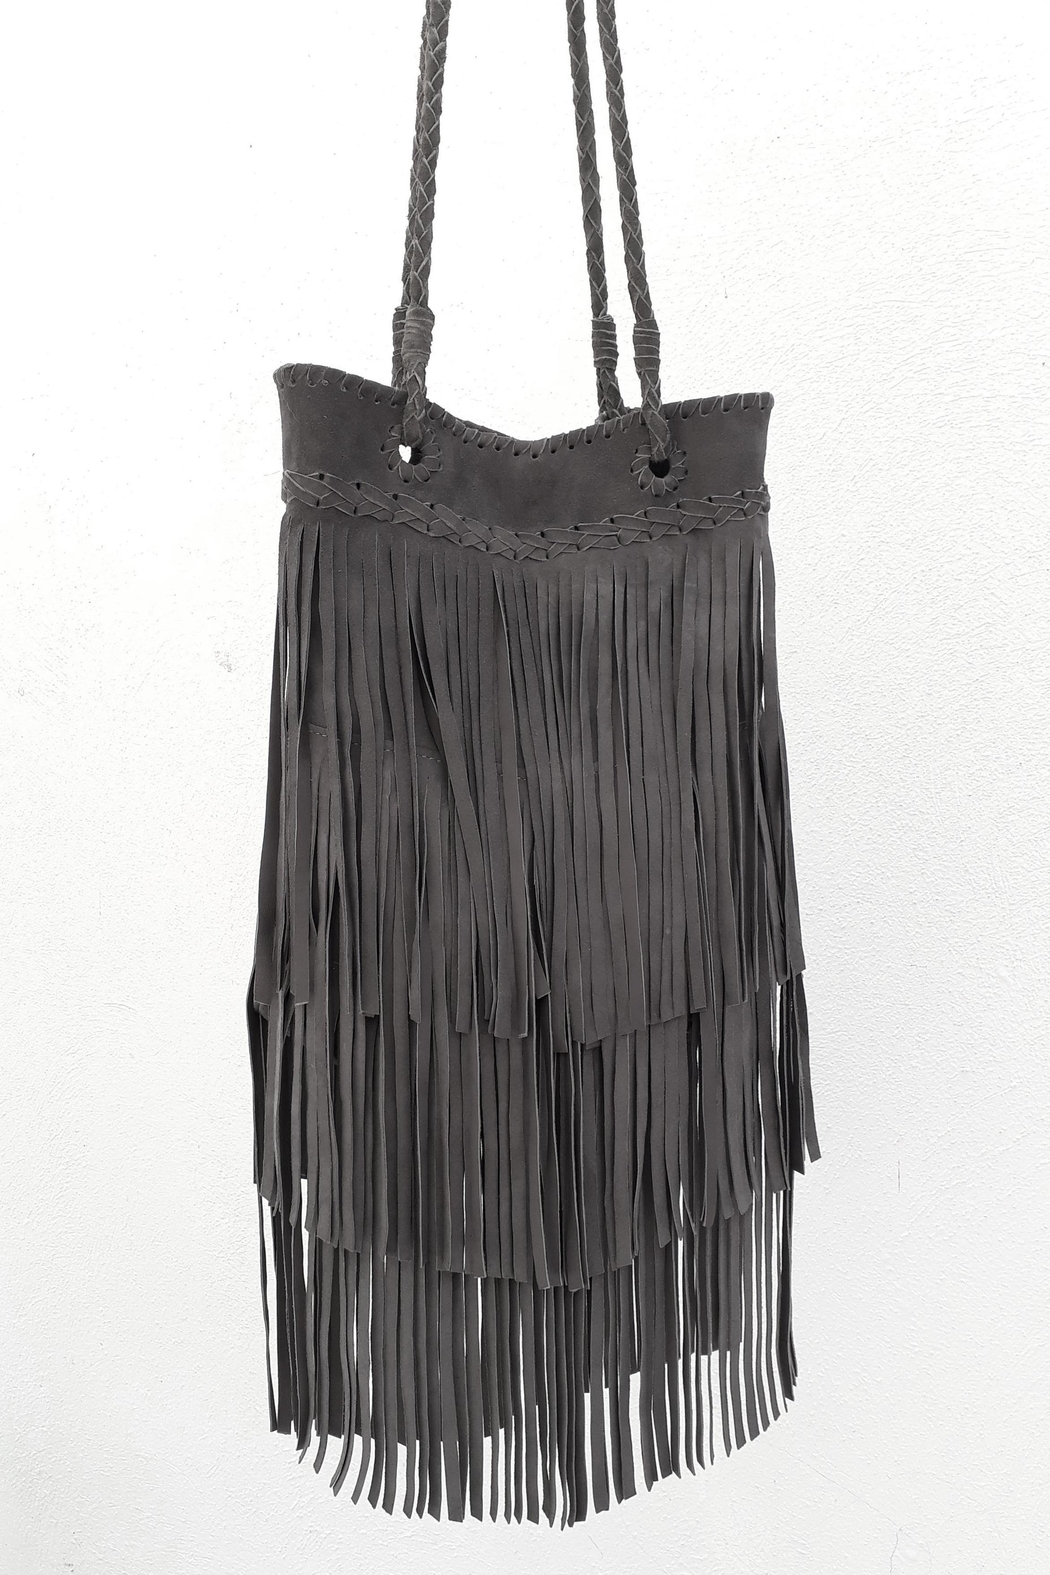 Areias Leather Gray Fringes Bag - Front Full Image